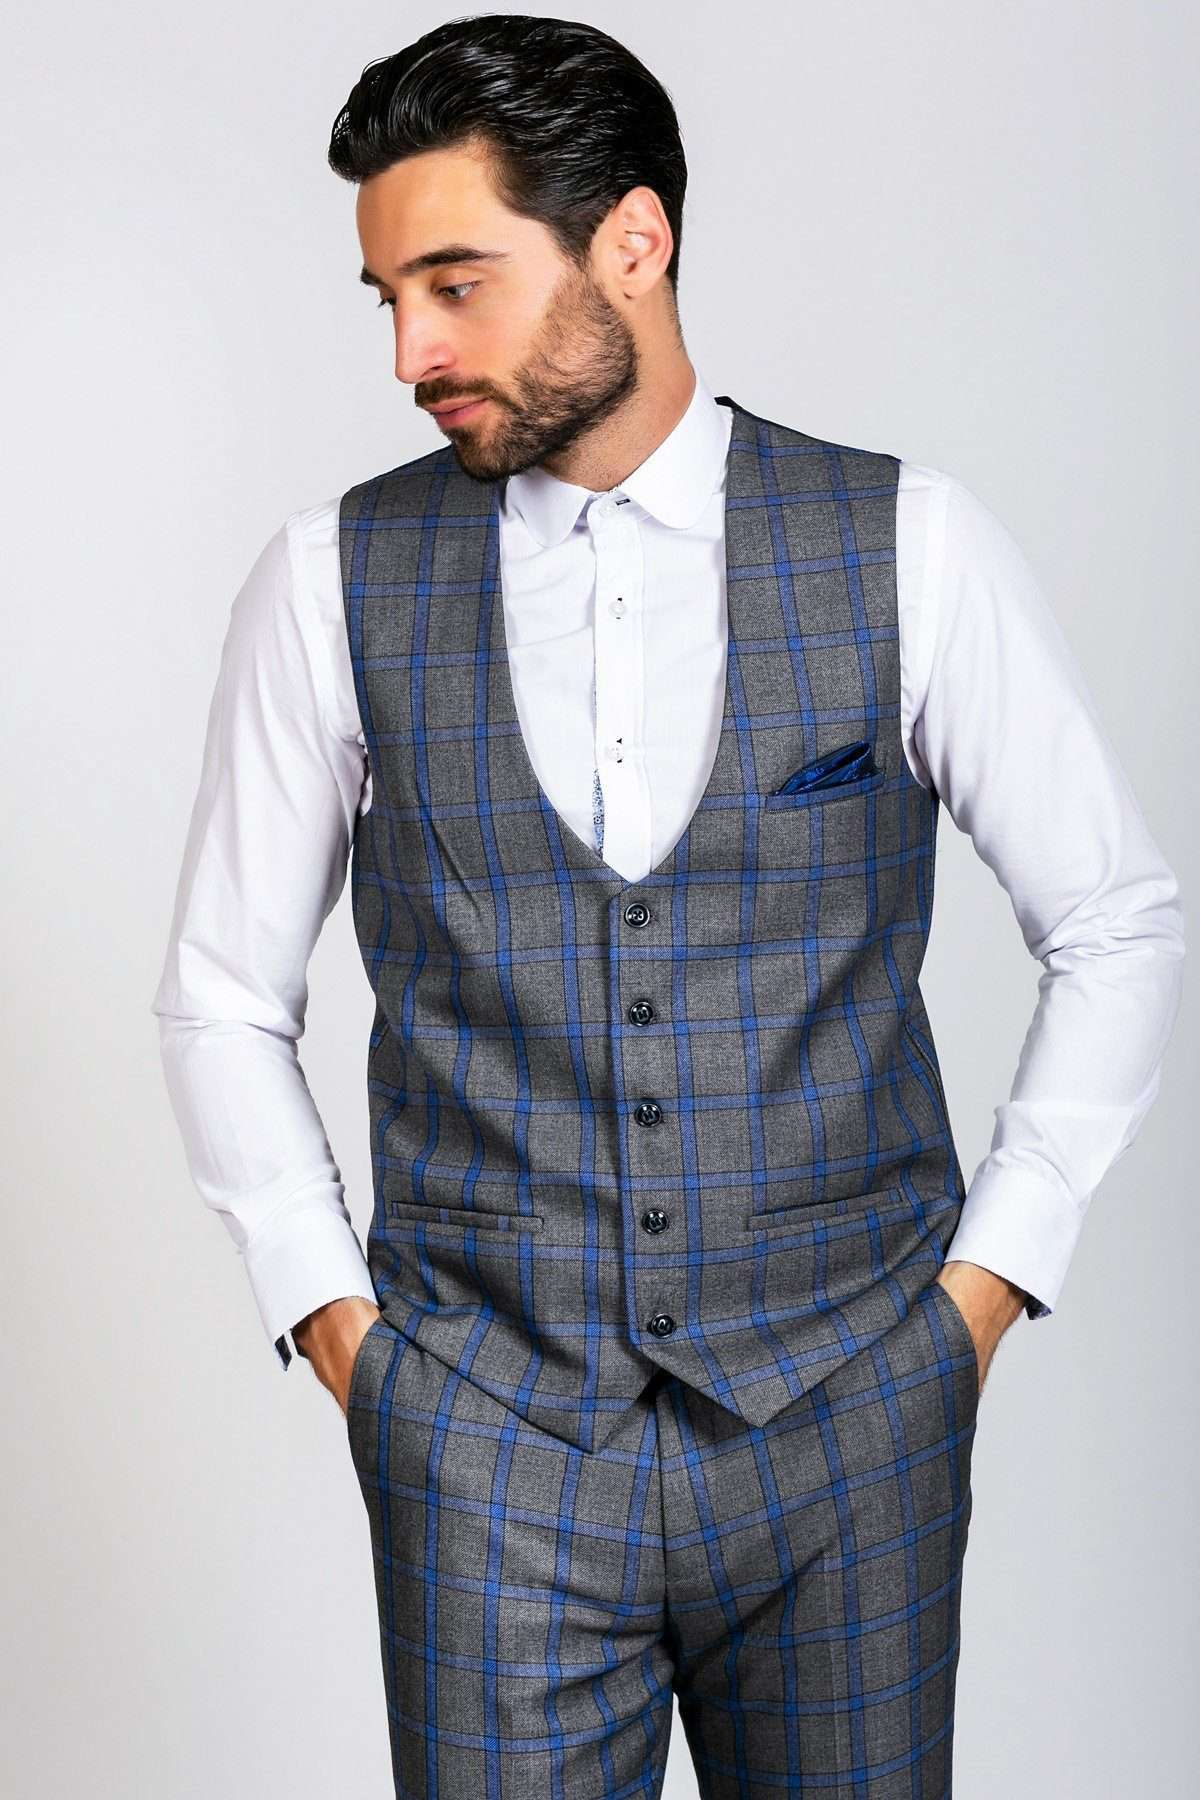 MARC DARCY Roman Windowpane Check Single Breasted Waistcoat - Revolver Menswear Bawtry